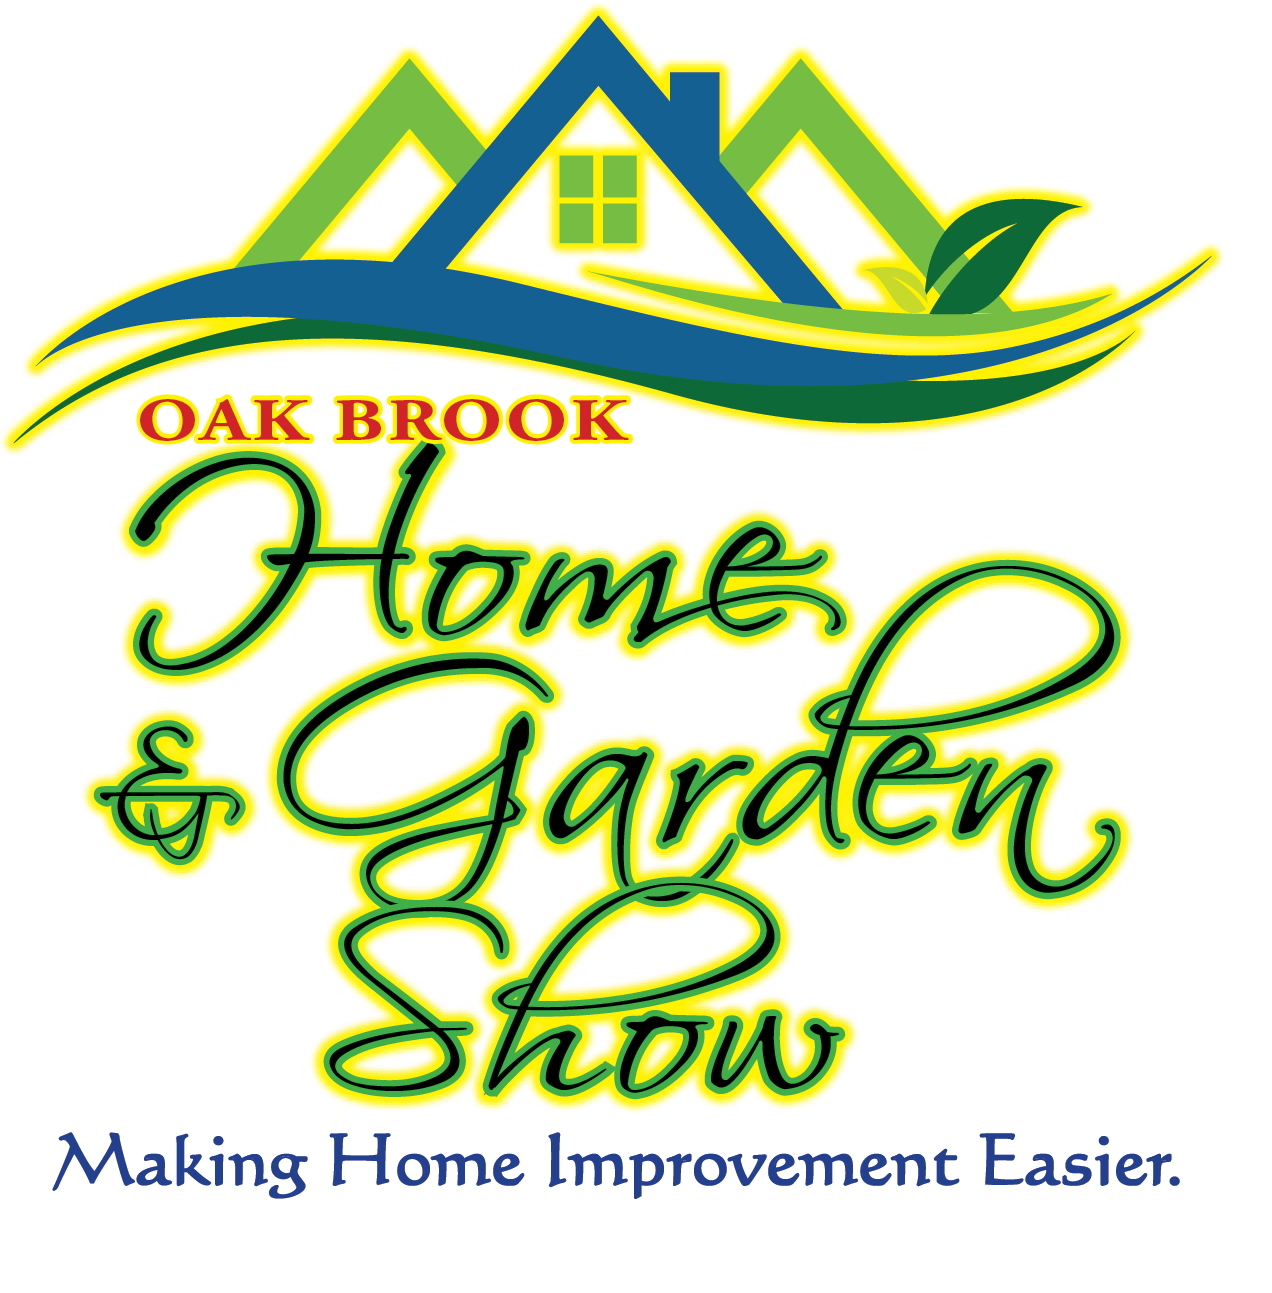 Oak Brook Home Show Logo Square Slogan